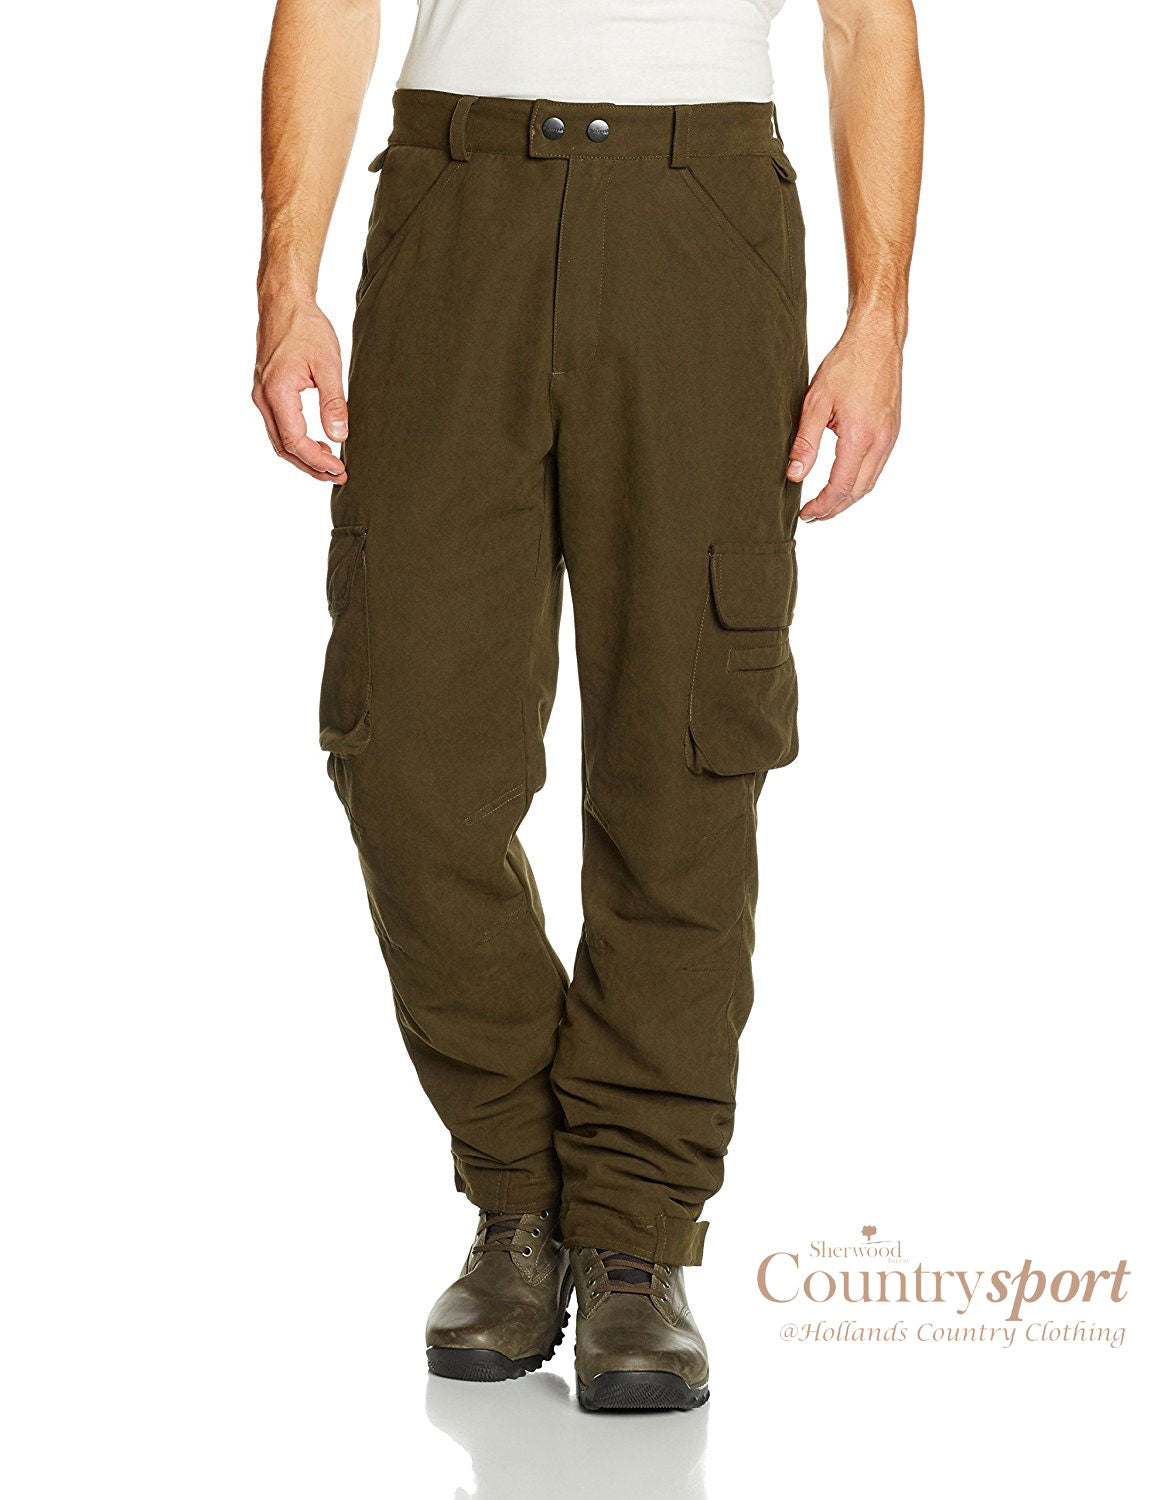 Sherwood Forest Kensington Trousers